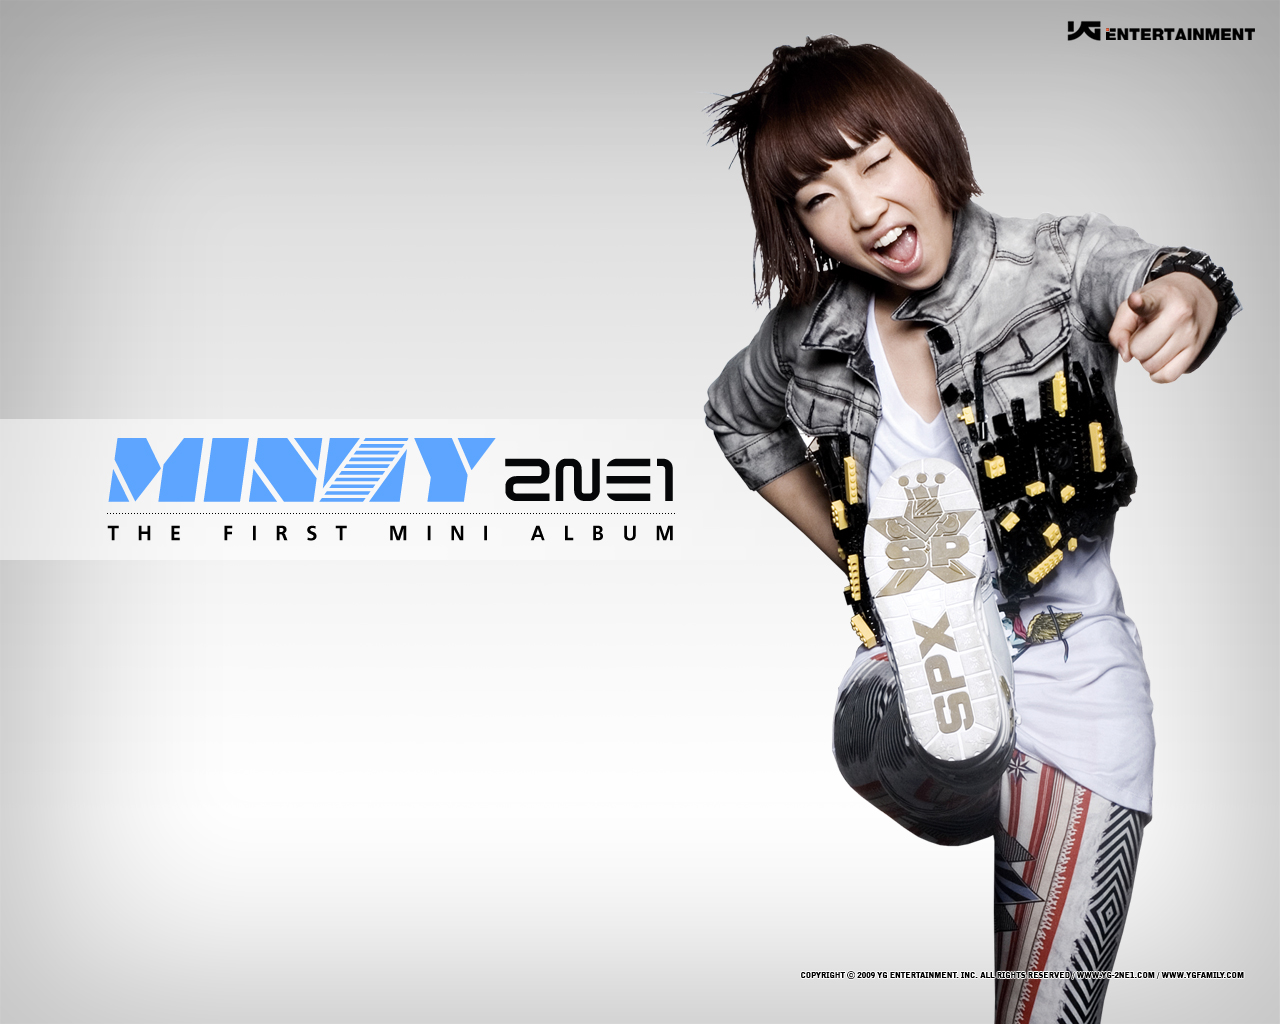 Cute Korean Wallpaper For Desktop 2ne1 Hd Wallpapers Most Beautiful Places In The World